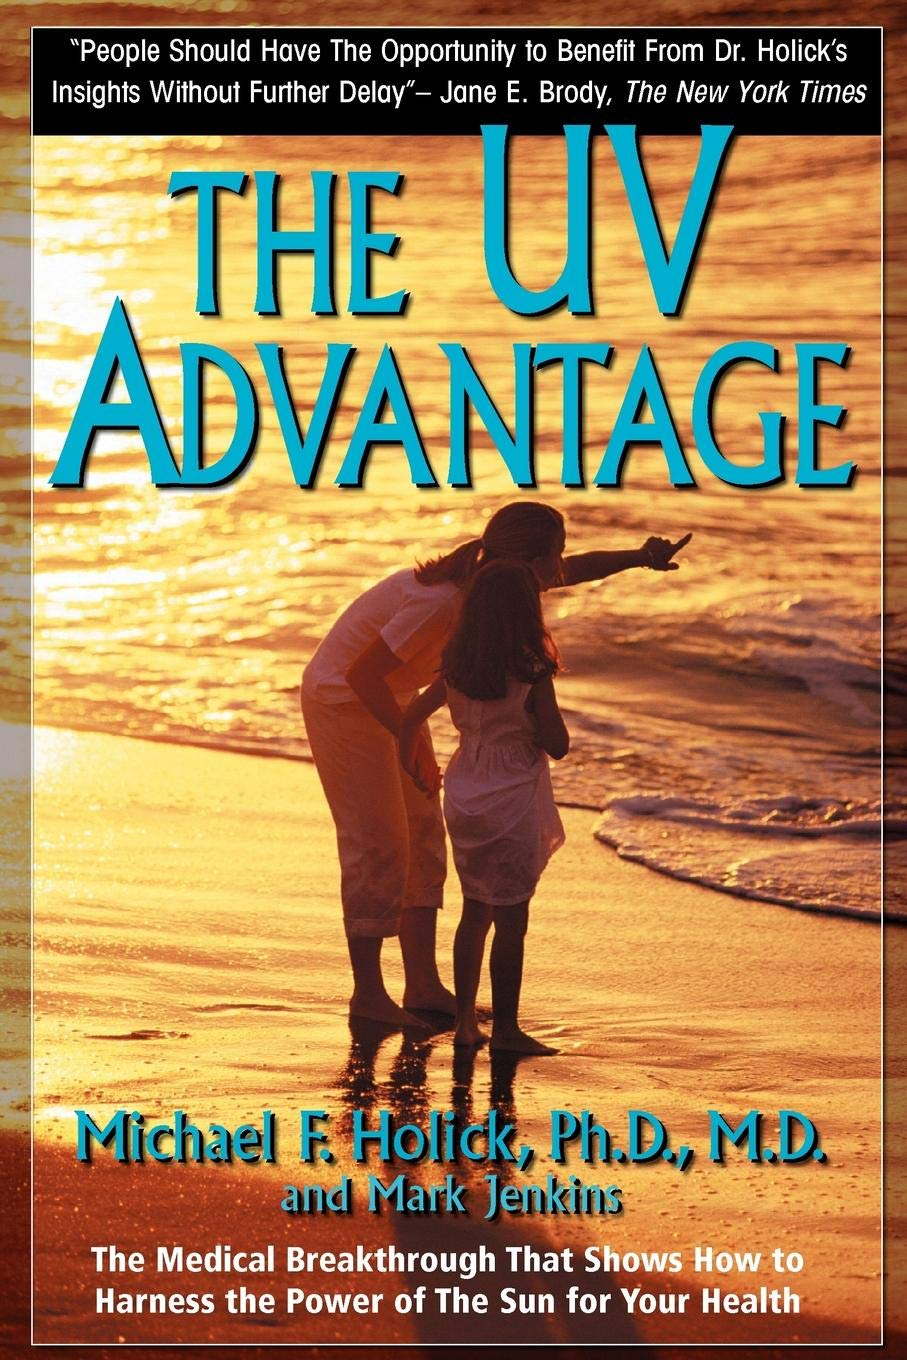 """the uV advantage - by Dr. Michael HolickAn insider with the guts to oppose mainstream guidelines on exposure to sunlight, the best way for most people to make vitamin D, and on taking more than 400 IU of vitamin D per day in supplements, Dr. Holick has followed in Dr. Linus Pauling's footsteps, doing for vitamin D what Pauling did for vitamin C. Here is a fearless quotation describing some of the advice you may have believed:""""So desperate is the anti-sun lobby to convince you of the dangers of the sun so that you will buy its products year-round, the representatives will tell you with a straight face that if it's February in Boston and you're planning to walk to the corner store to buy a quart of milk or sit outside on your lunch break, you should wear [smear on] sunscreen. This is wrong-headed and alarmist. Even on the sunniest February day, the sun isn't strong enough in New England or New York to increase your risk of skin cancer significantly… The scare tactics of the cosme-ceutical industry have been embraced by most of the dermatology profession. These groups have worked in concert and frightened the daylights out of people – or, to put it more accurately, frightened people out of the daylight."""" (pp12-13)Evidence is given from Dr. Holick's own work and others that vitamin D levels are too low in a large fraction of the world's humans, especially those with dark skin and living more than 30° from the equator. This deficiency causes more osteoporosis, rickets, high blood pressure, stroke, heart attacks, arthritis, multiple sclerosis and cancer than had been believed just 20 years ago. The types of skin cancer caused by excessive sunlight are easily treated and are rarely fatal.With the greatest care, Dr. Holick explains how to obtain the UVB rays from the sun (or tanning parlor lights) without receiving too much UVA or becoming burned. He does advocate the use of sunscreens, the ones that absorb UVA as well as UVB, after you have had all the sun exposure that is"""